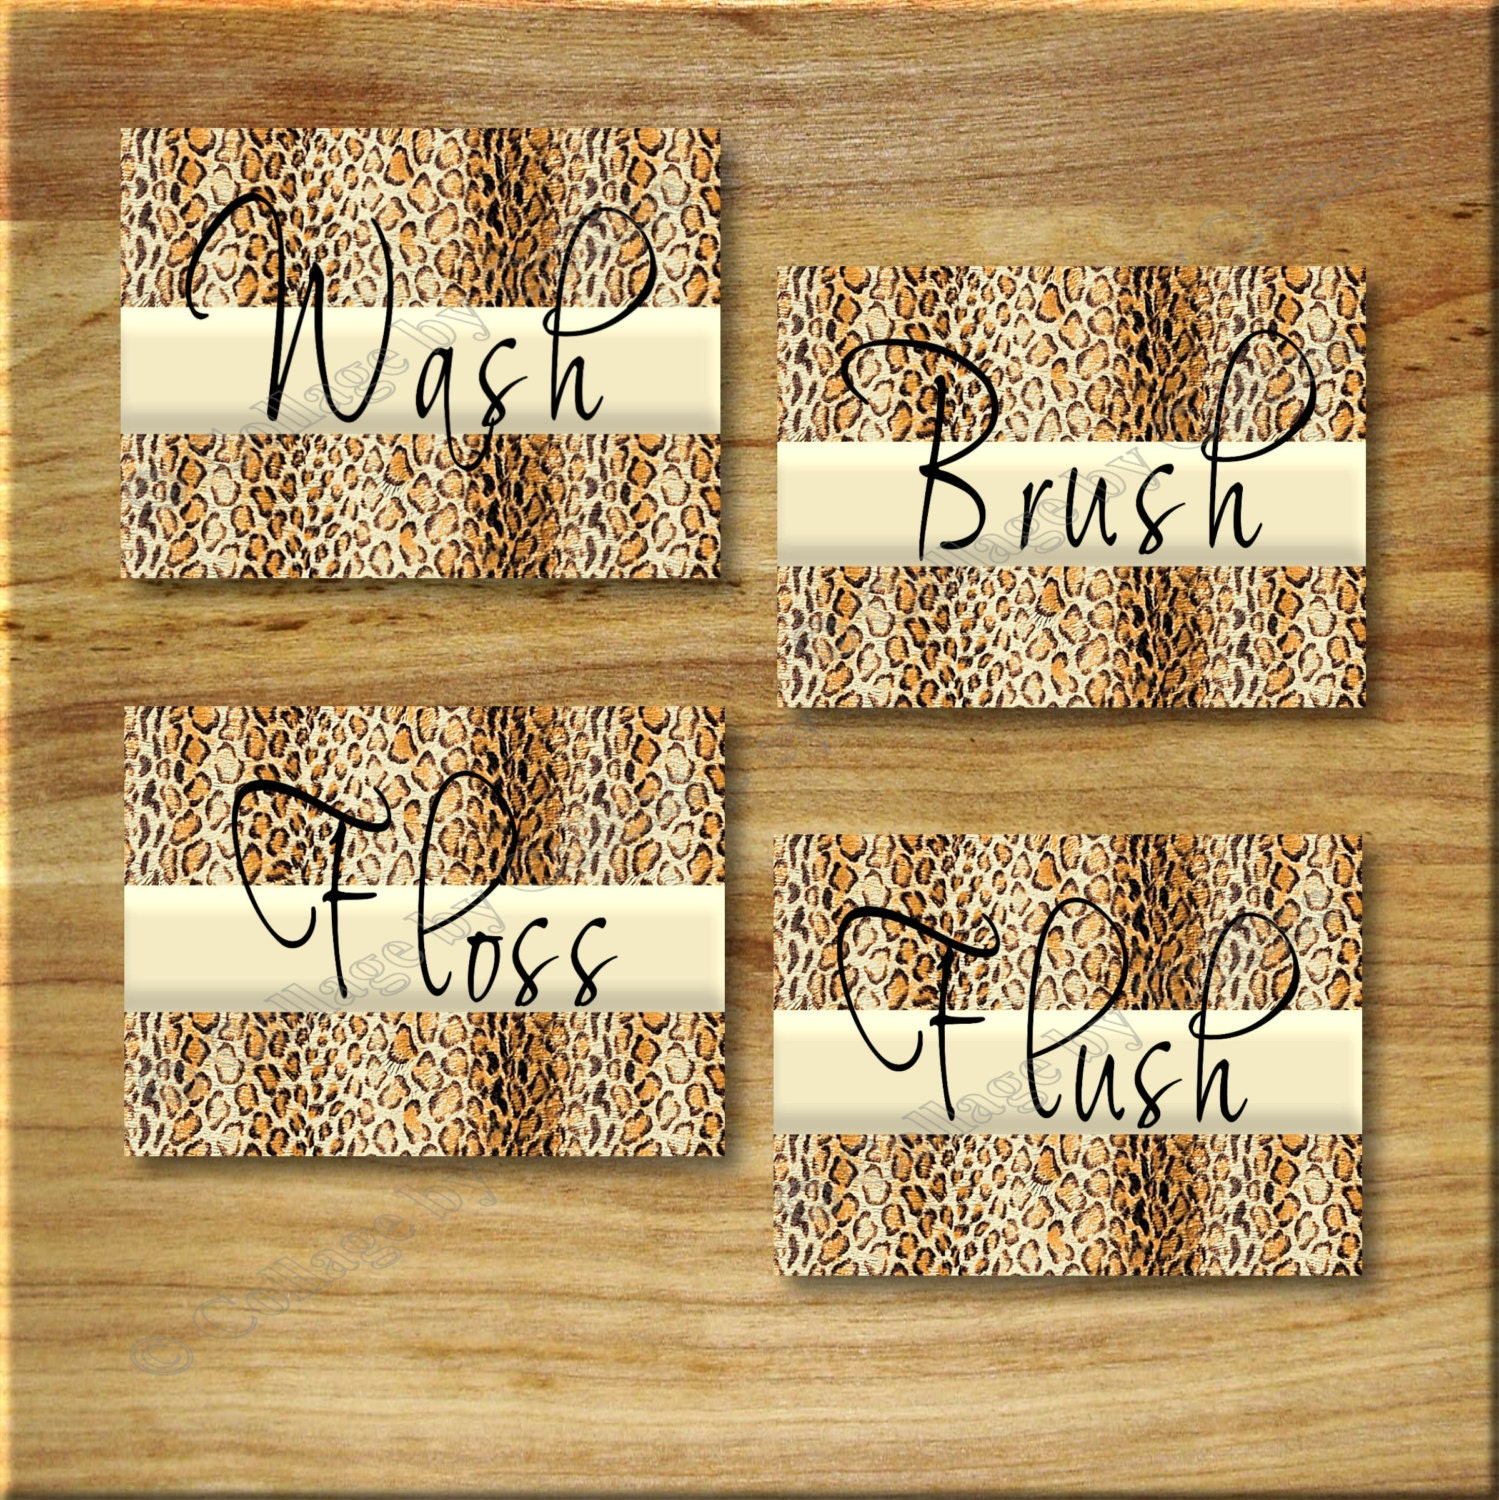 leopard bathroom cheetah print word art wall decor wash floss